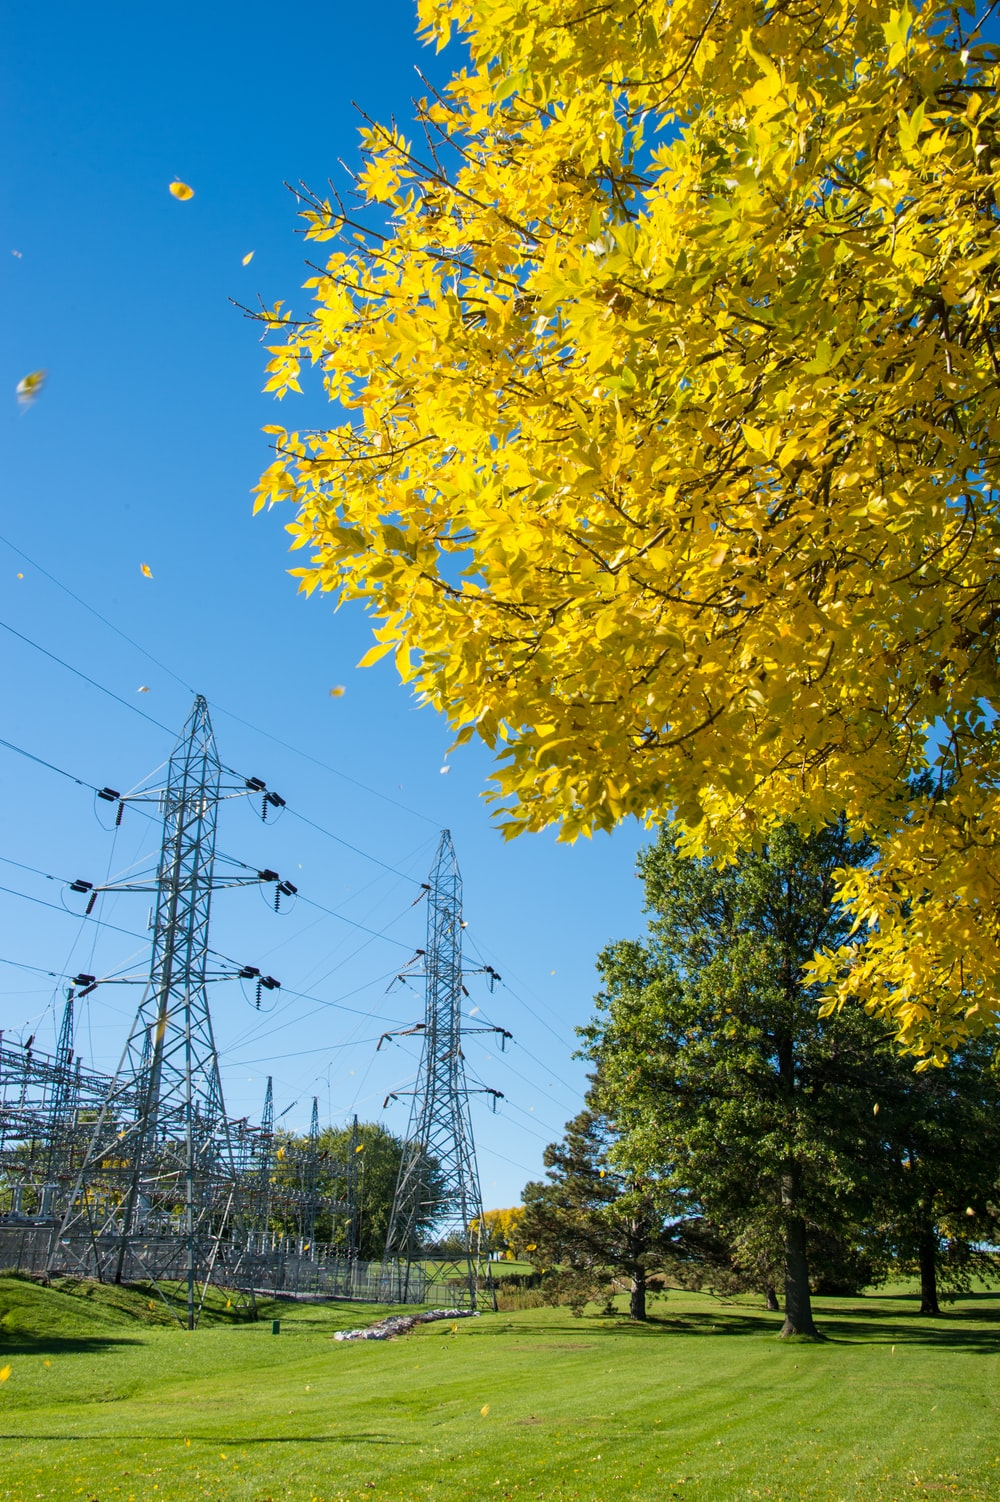 yellow petaled tree on green grass field near cable posts